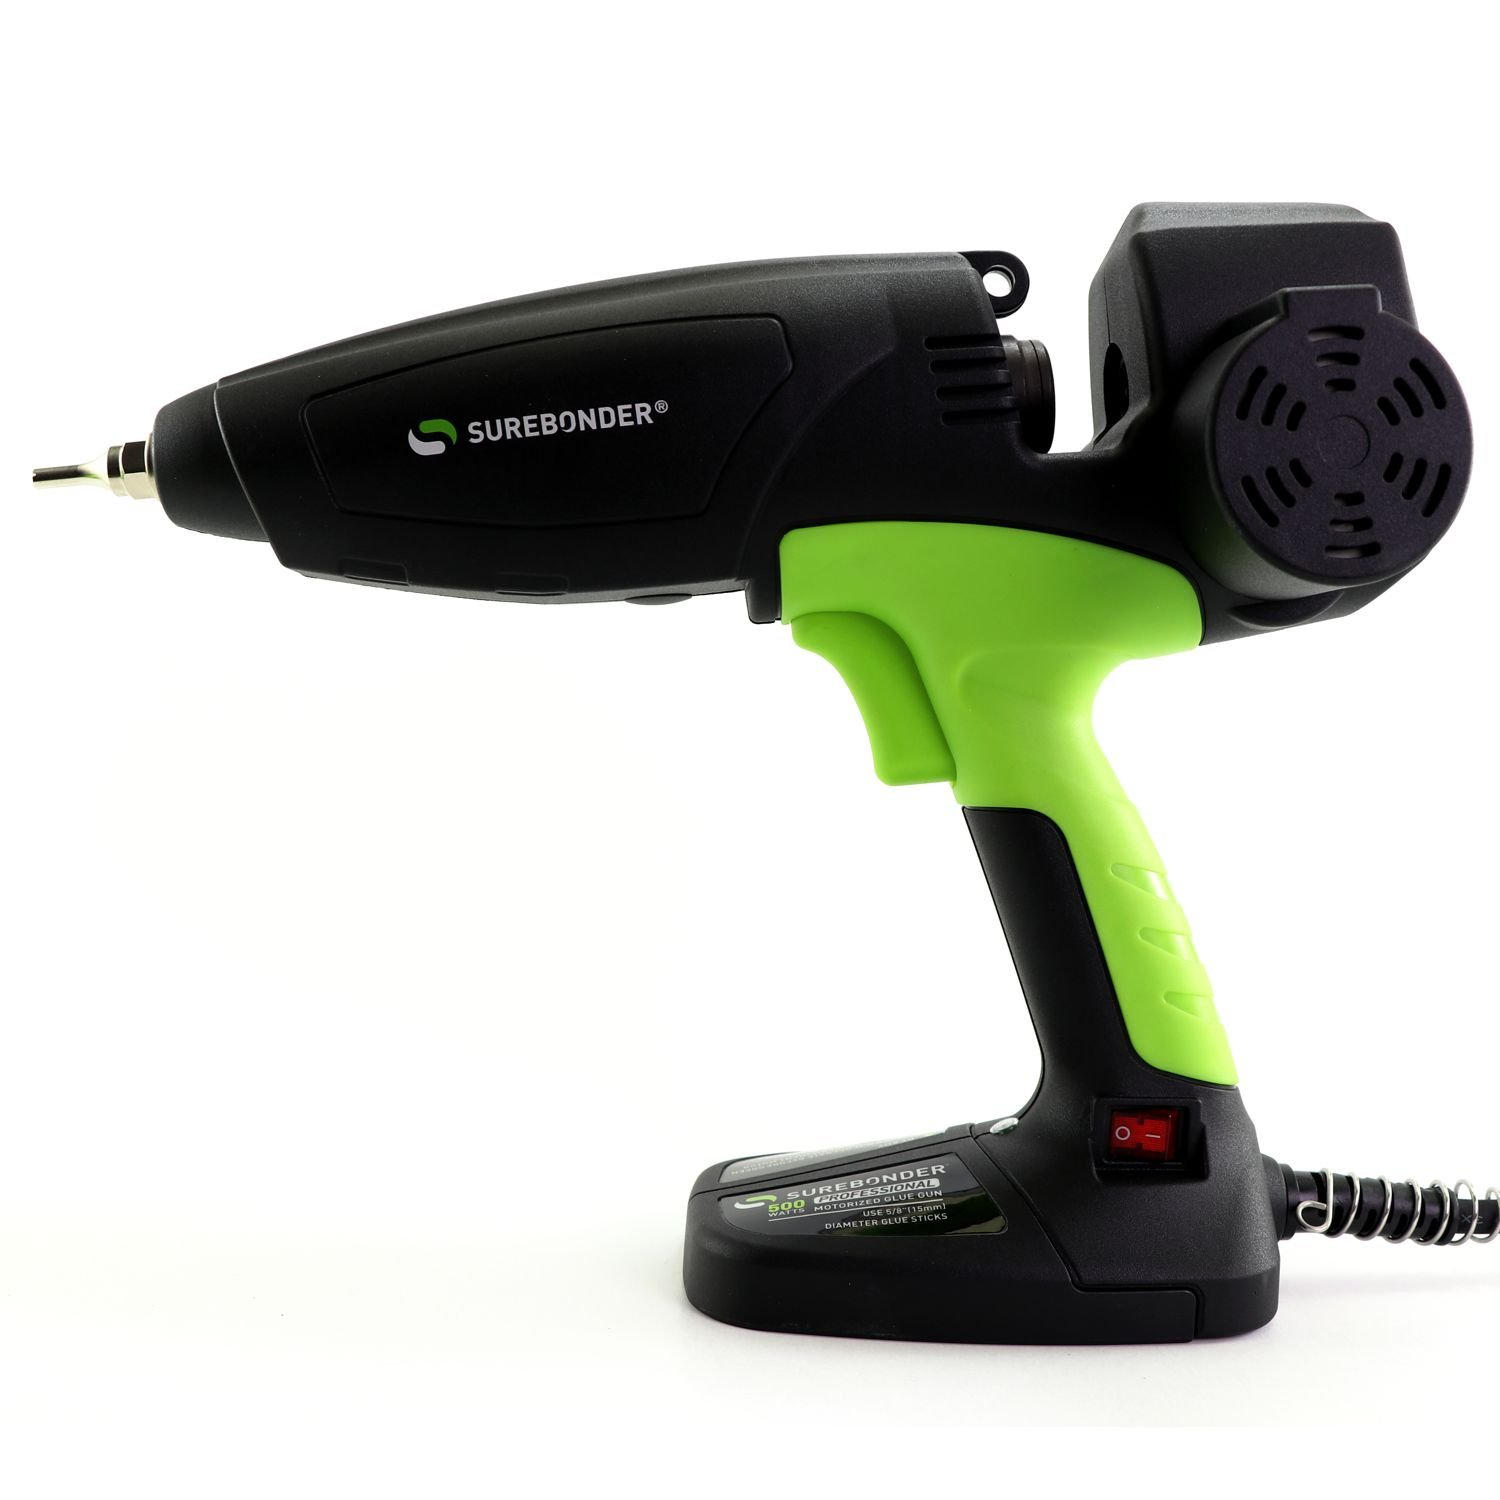 Surebonder MGG-500 500 Watt Motorized Professional Heavy Duty Hot Glue Gun - Uses oversized, 5/8'' glue sticks by Surebonder